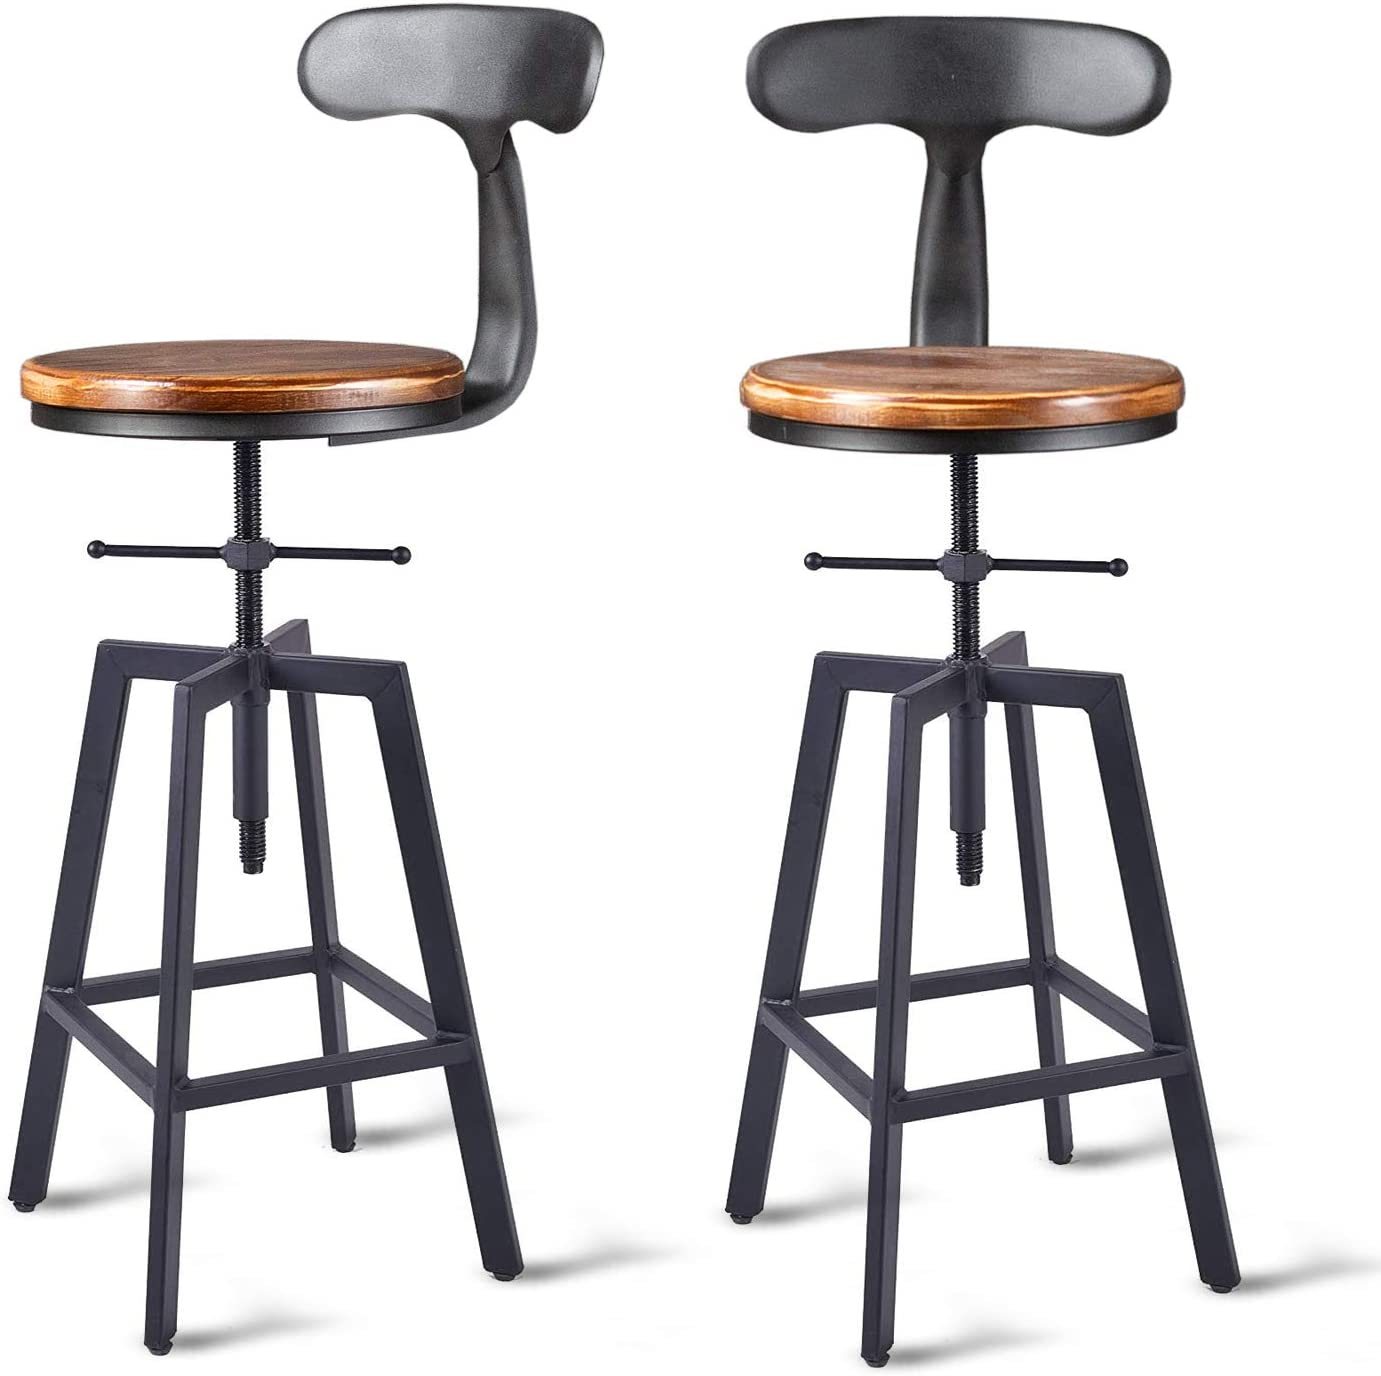 Buy Diwhy Industrial Bar Stools,Kitchen Dining Chair,Wood Top ...